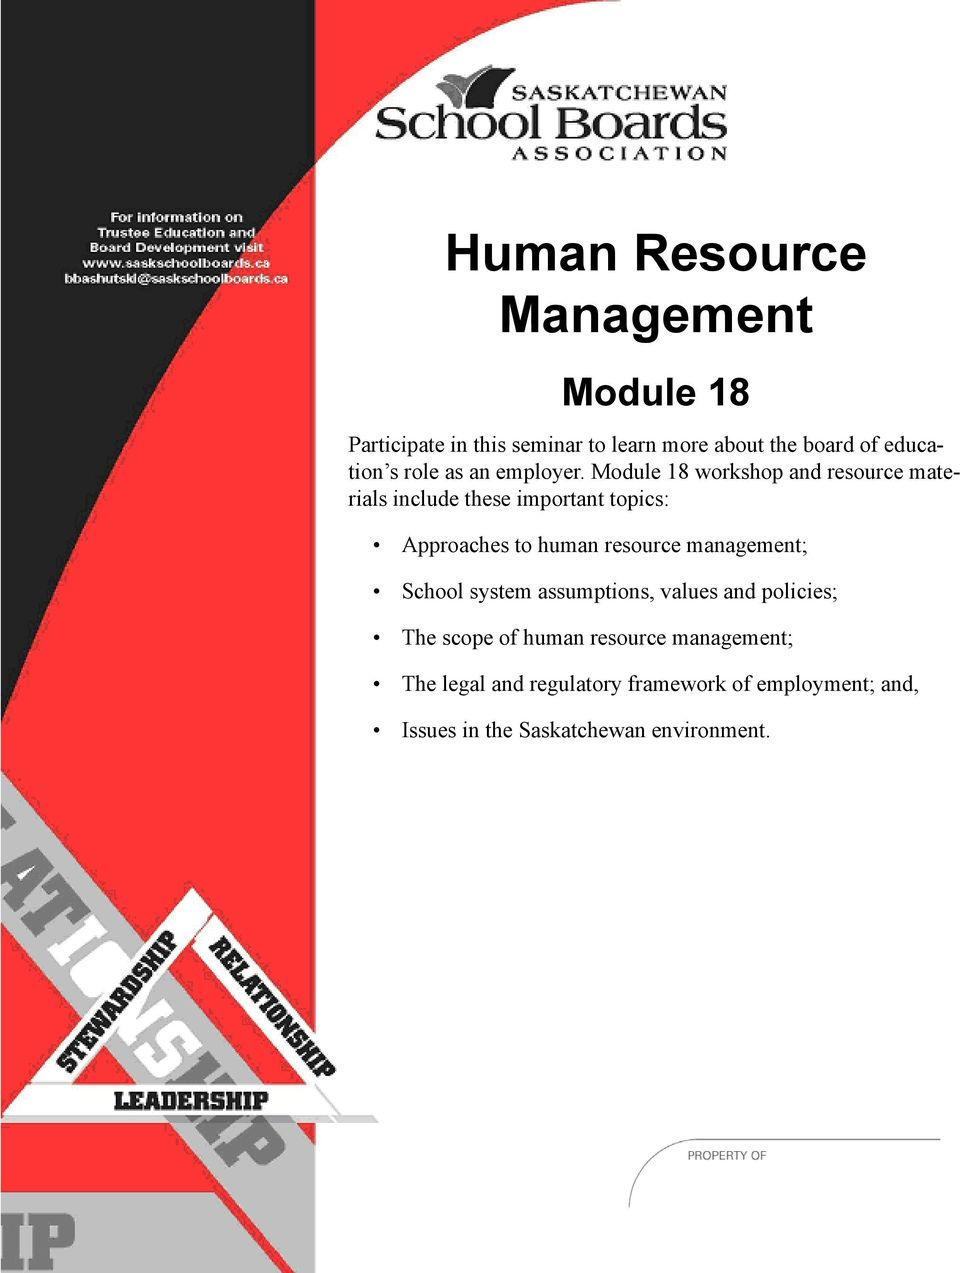 Module 18 workshop and resource materials include these important topics: Approaches to human resource